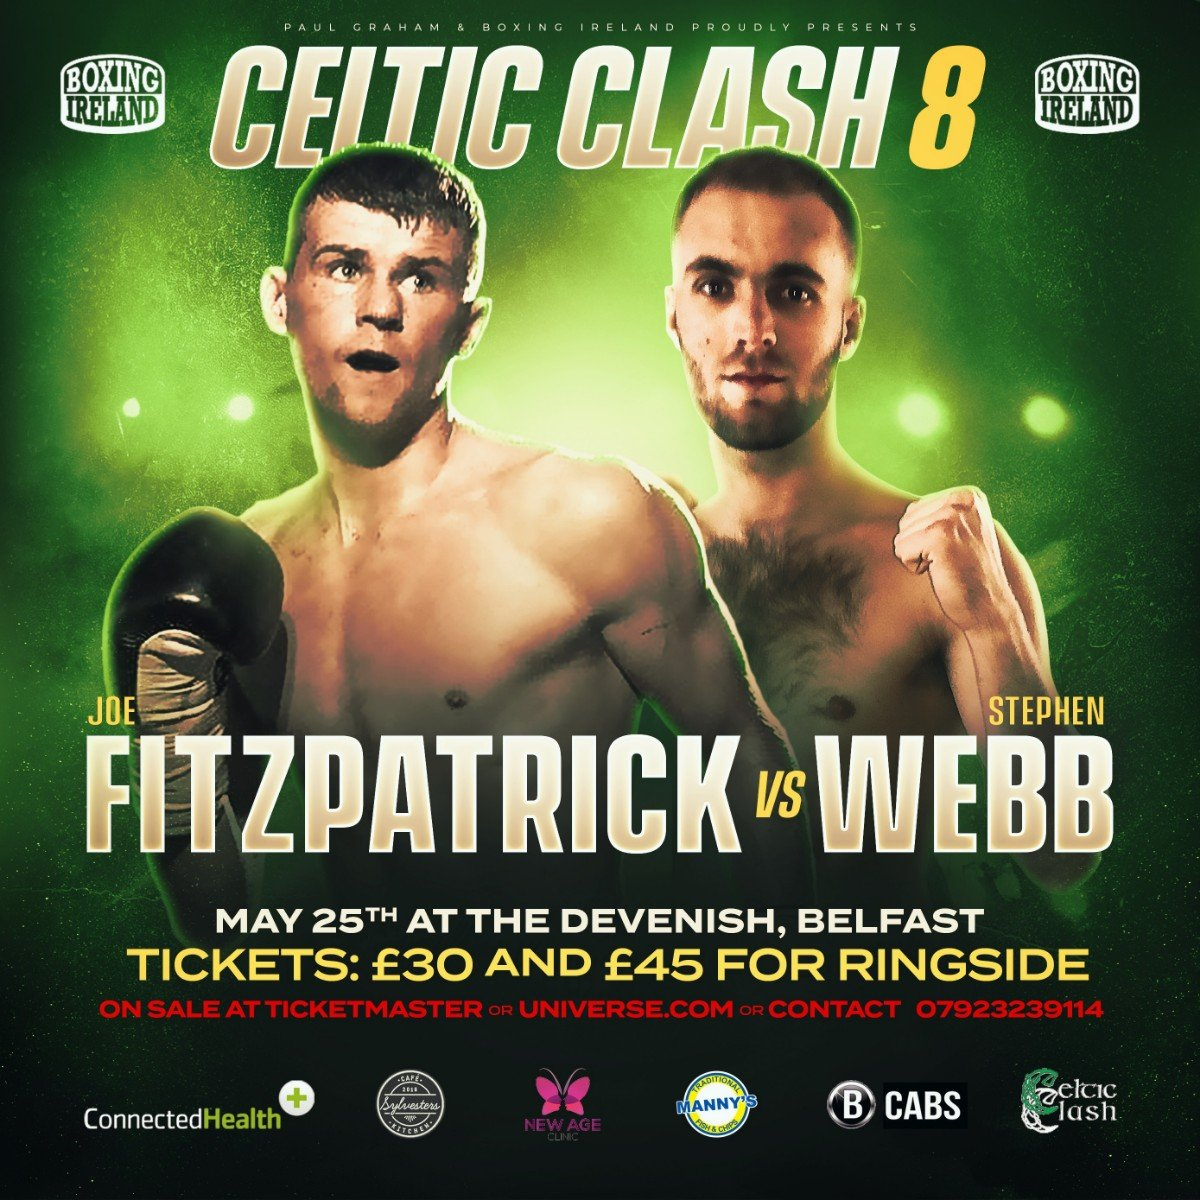 - The hugely popular Celtic Clash series will return to Belfast next month.